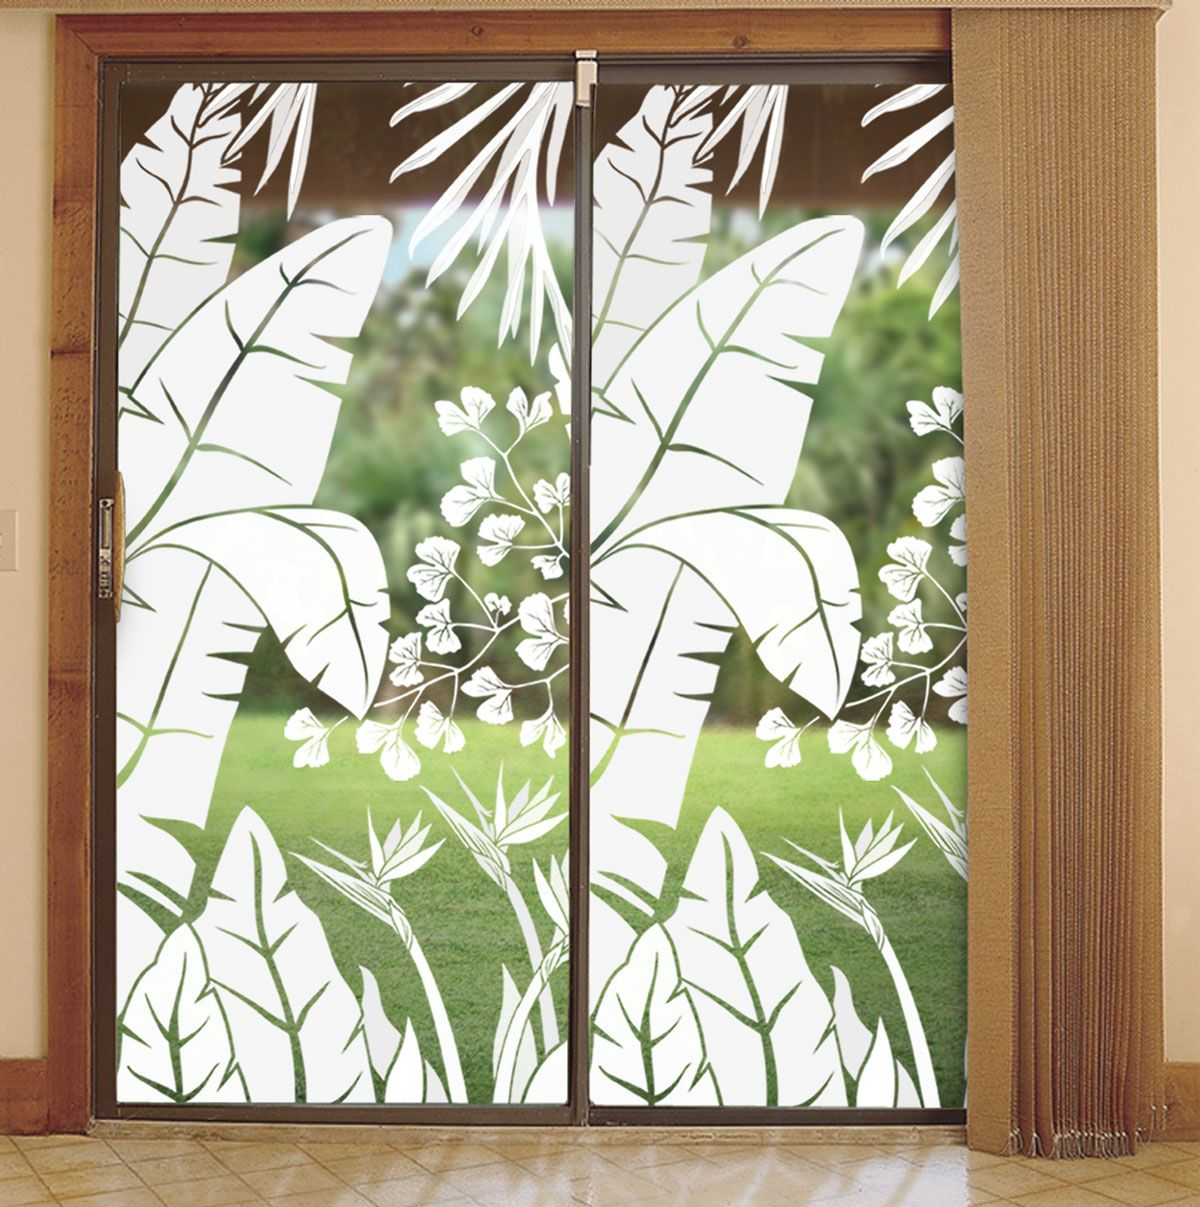 37 Awesome Glass Doors Design Ideas Glass Painting Designs Glass Painting Door Glass Design